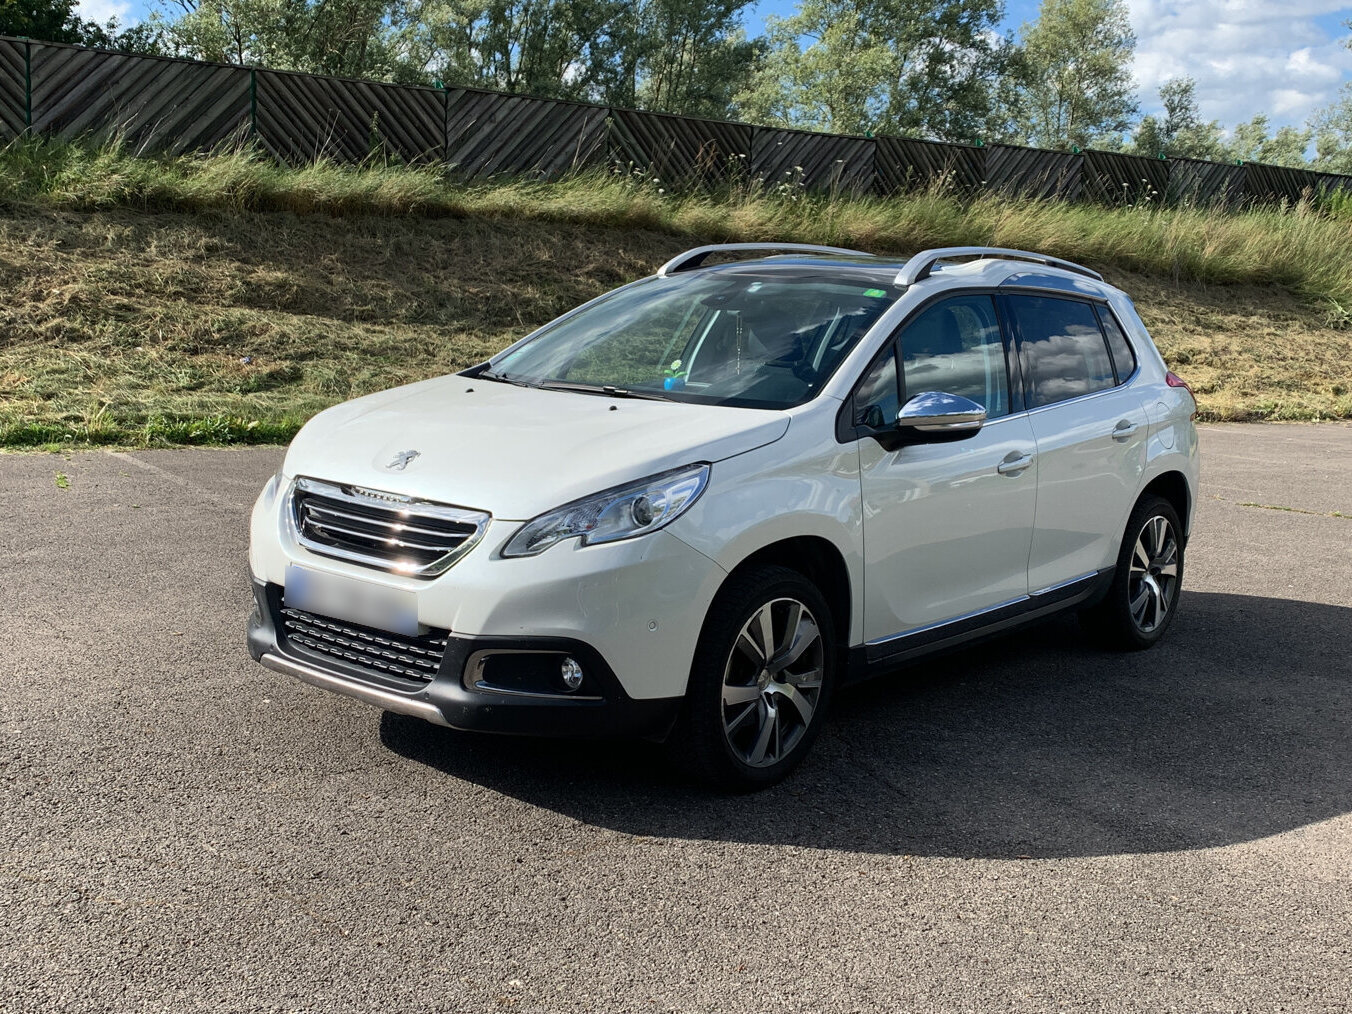 PEUGEOT 2008 1.2 PURETECH 110 ALLURE EAT BVA START-STOP